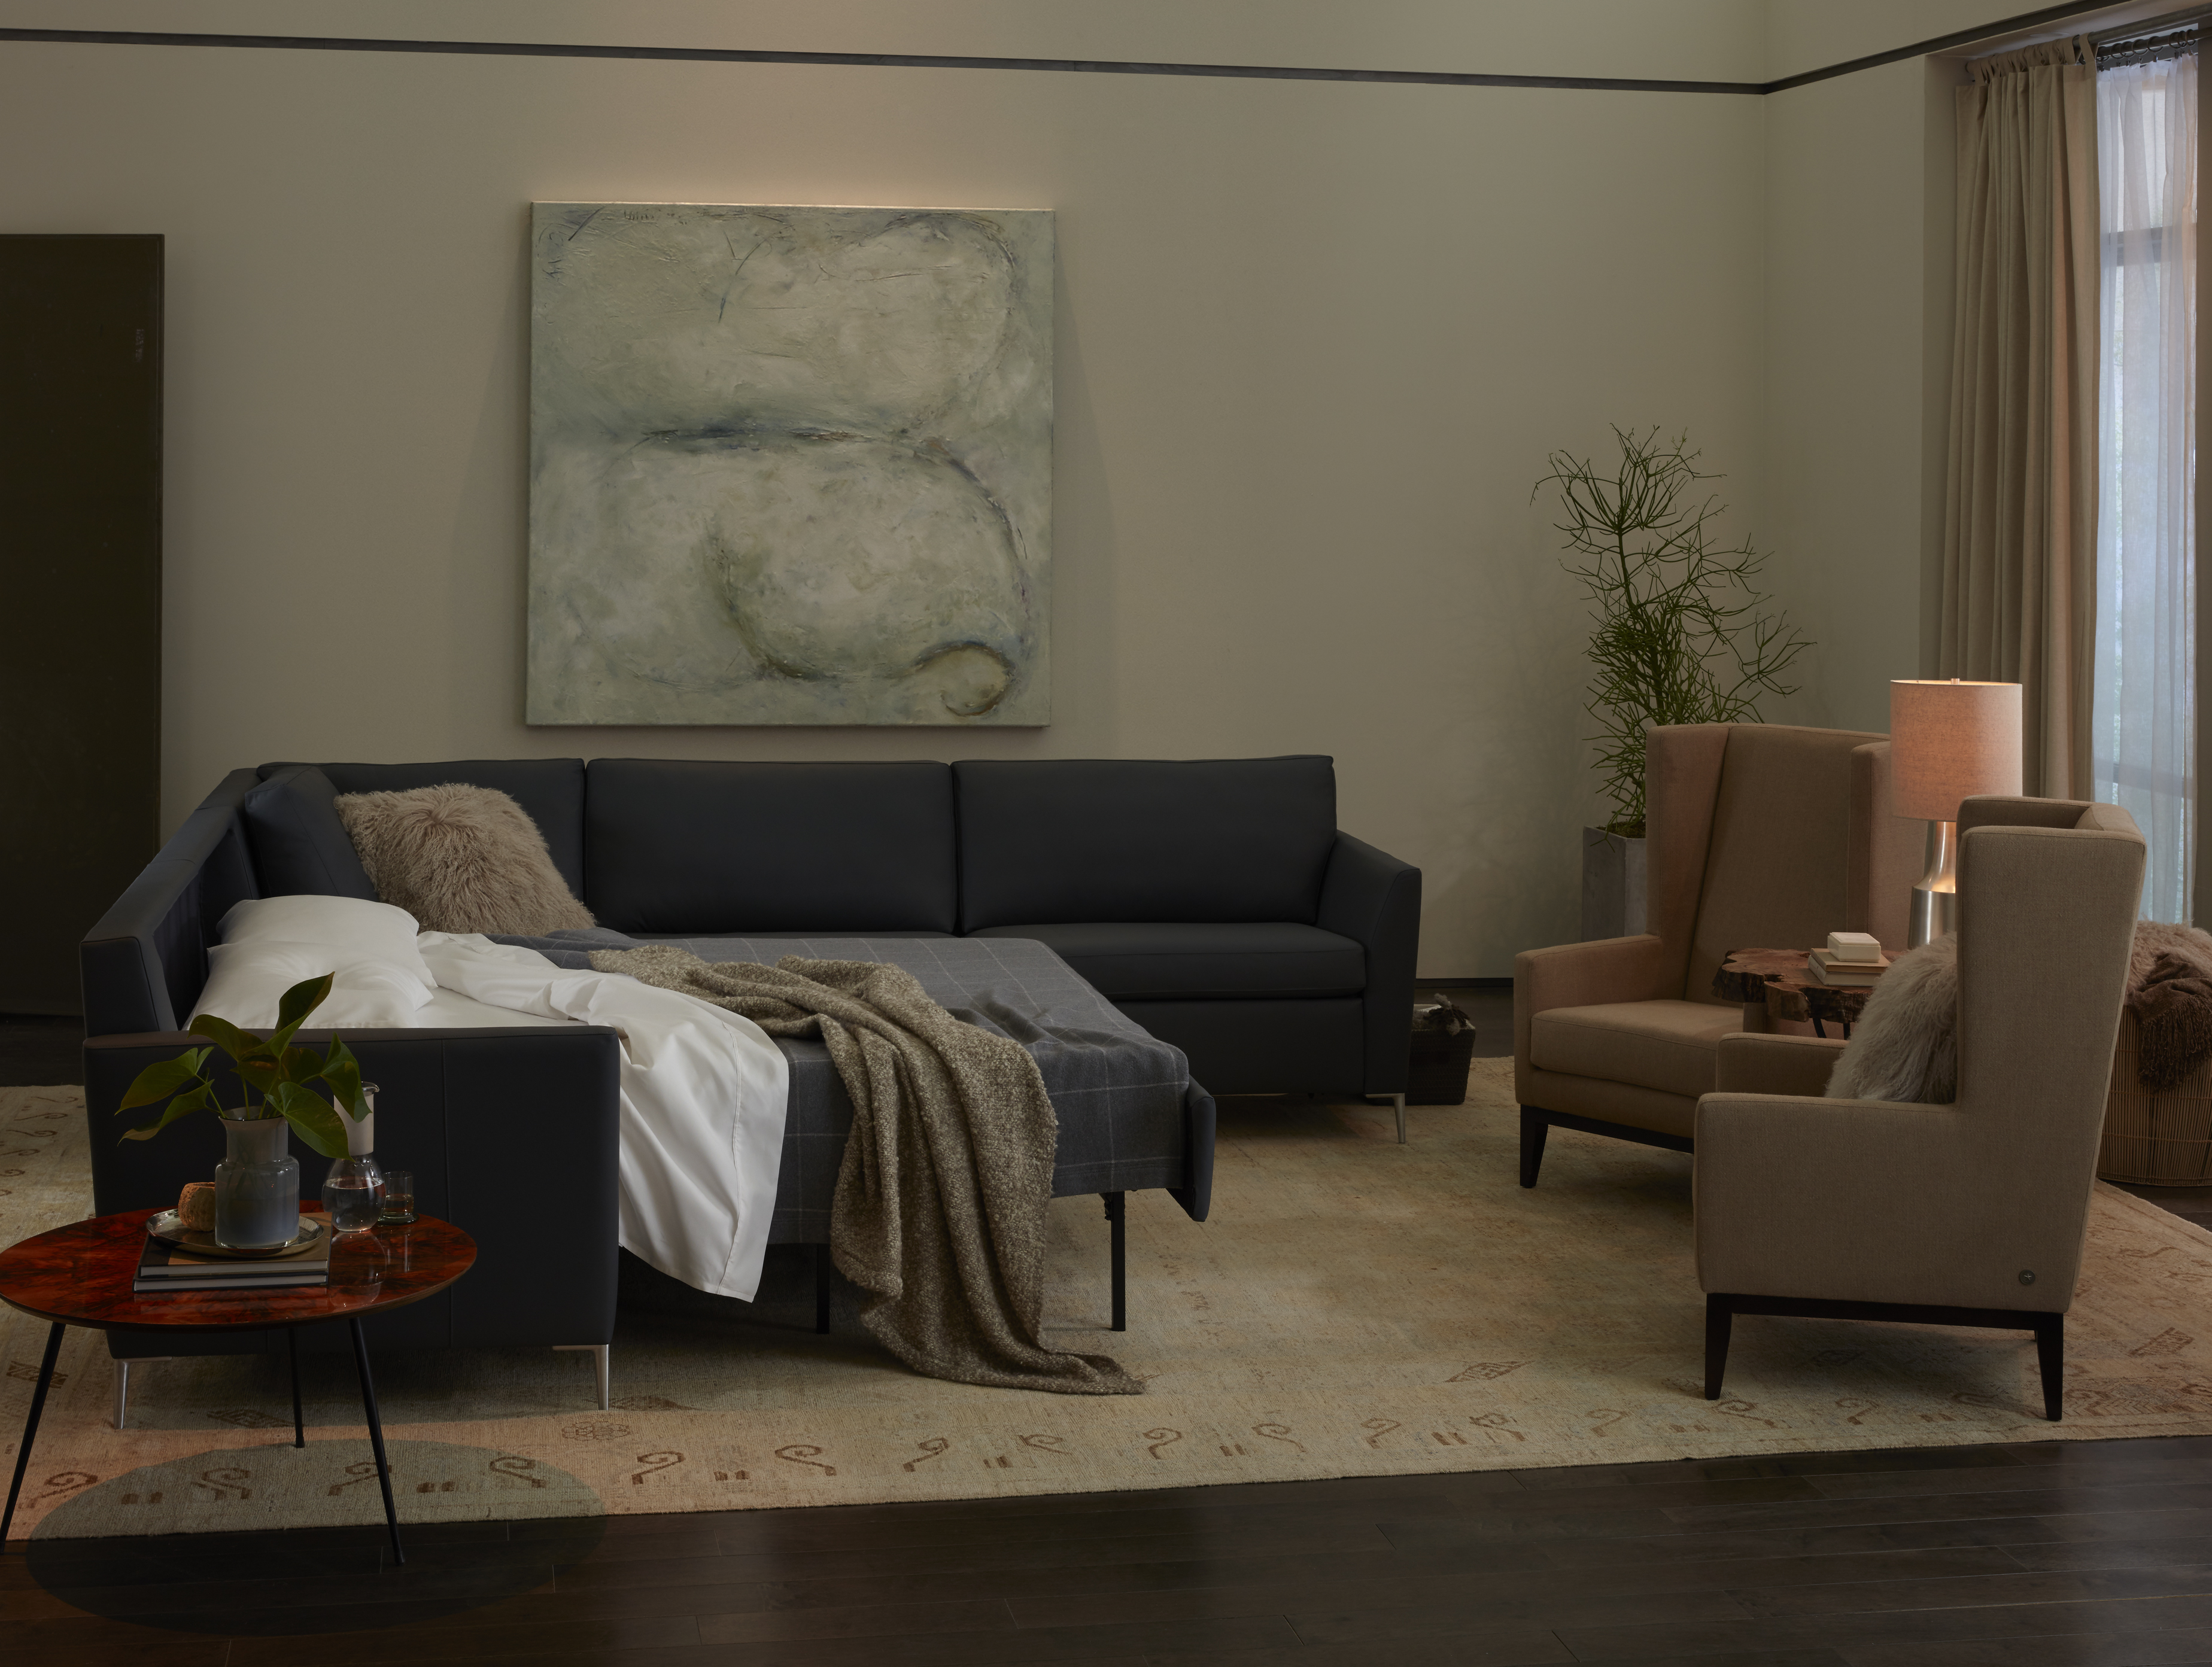 Sleeper Sofa Sale Contemporary Galleries Full Service Furniture Dealer Located In Charleston West Virginia